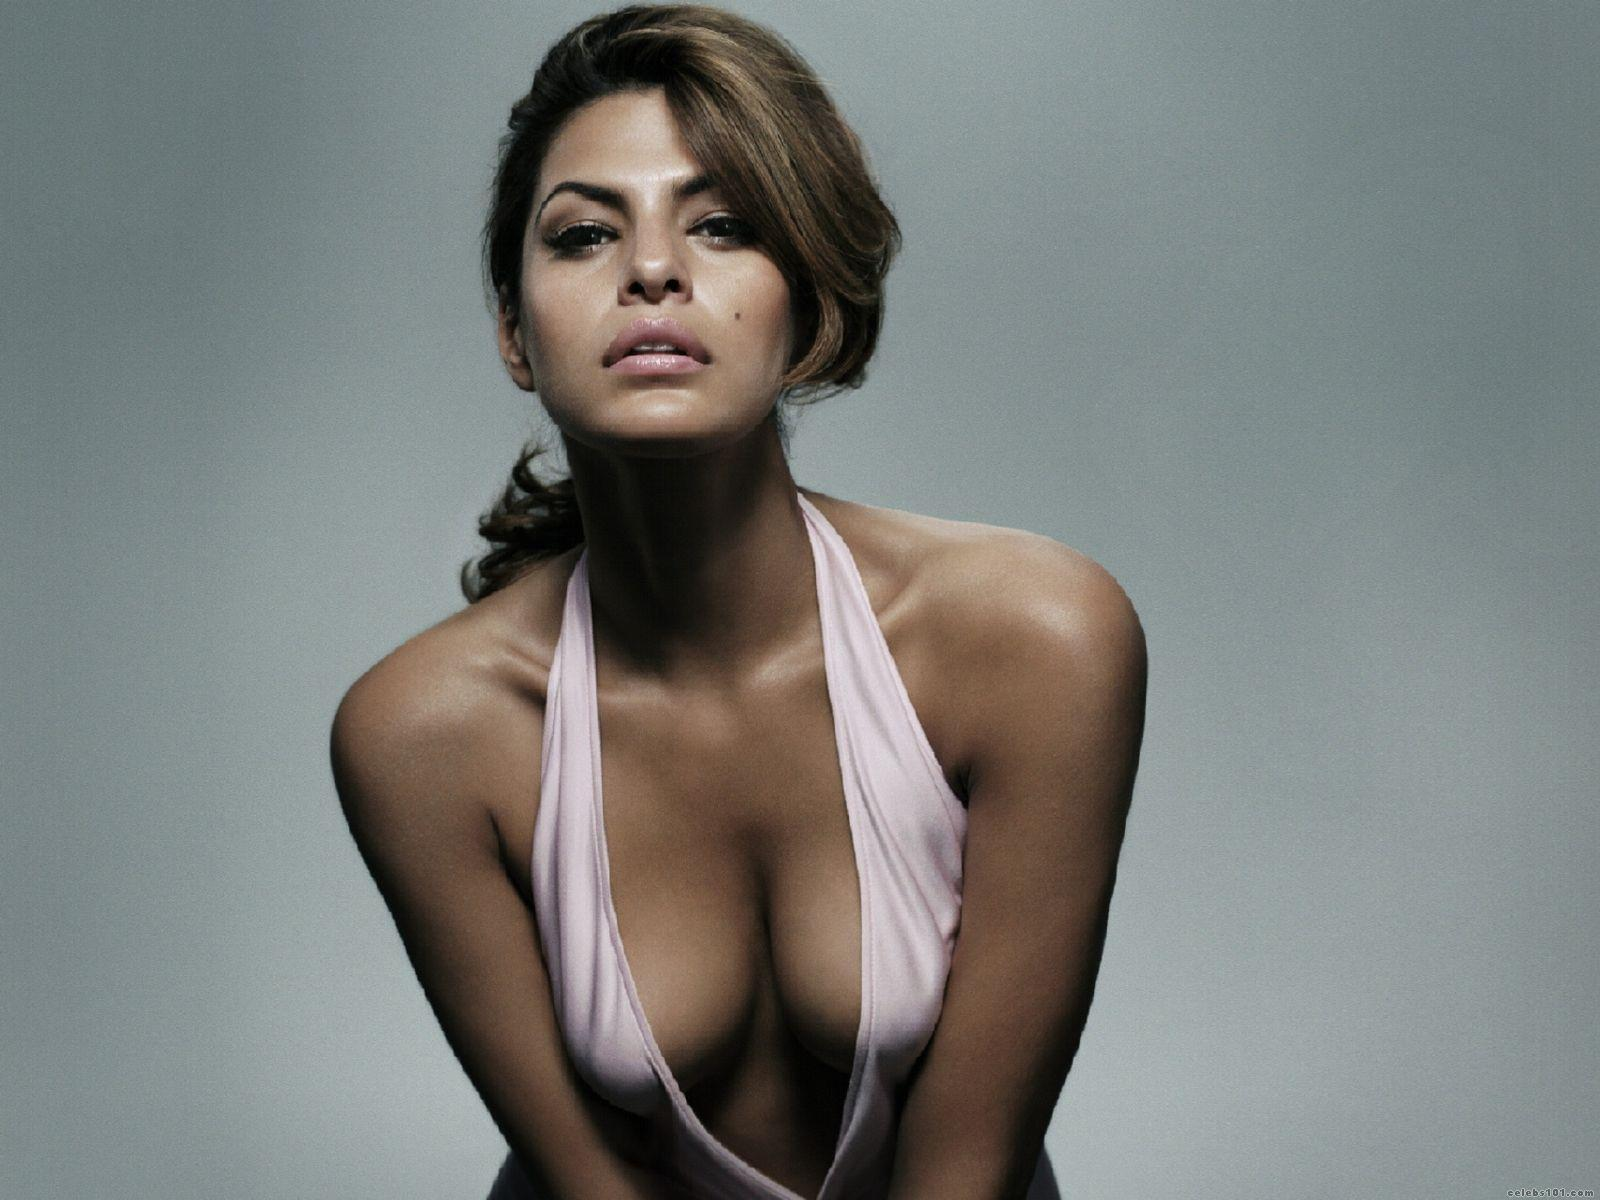 eva mendes hot cleavage pic